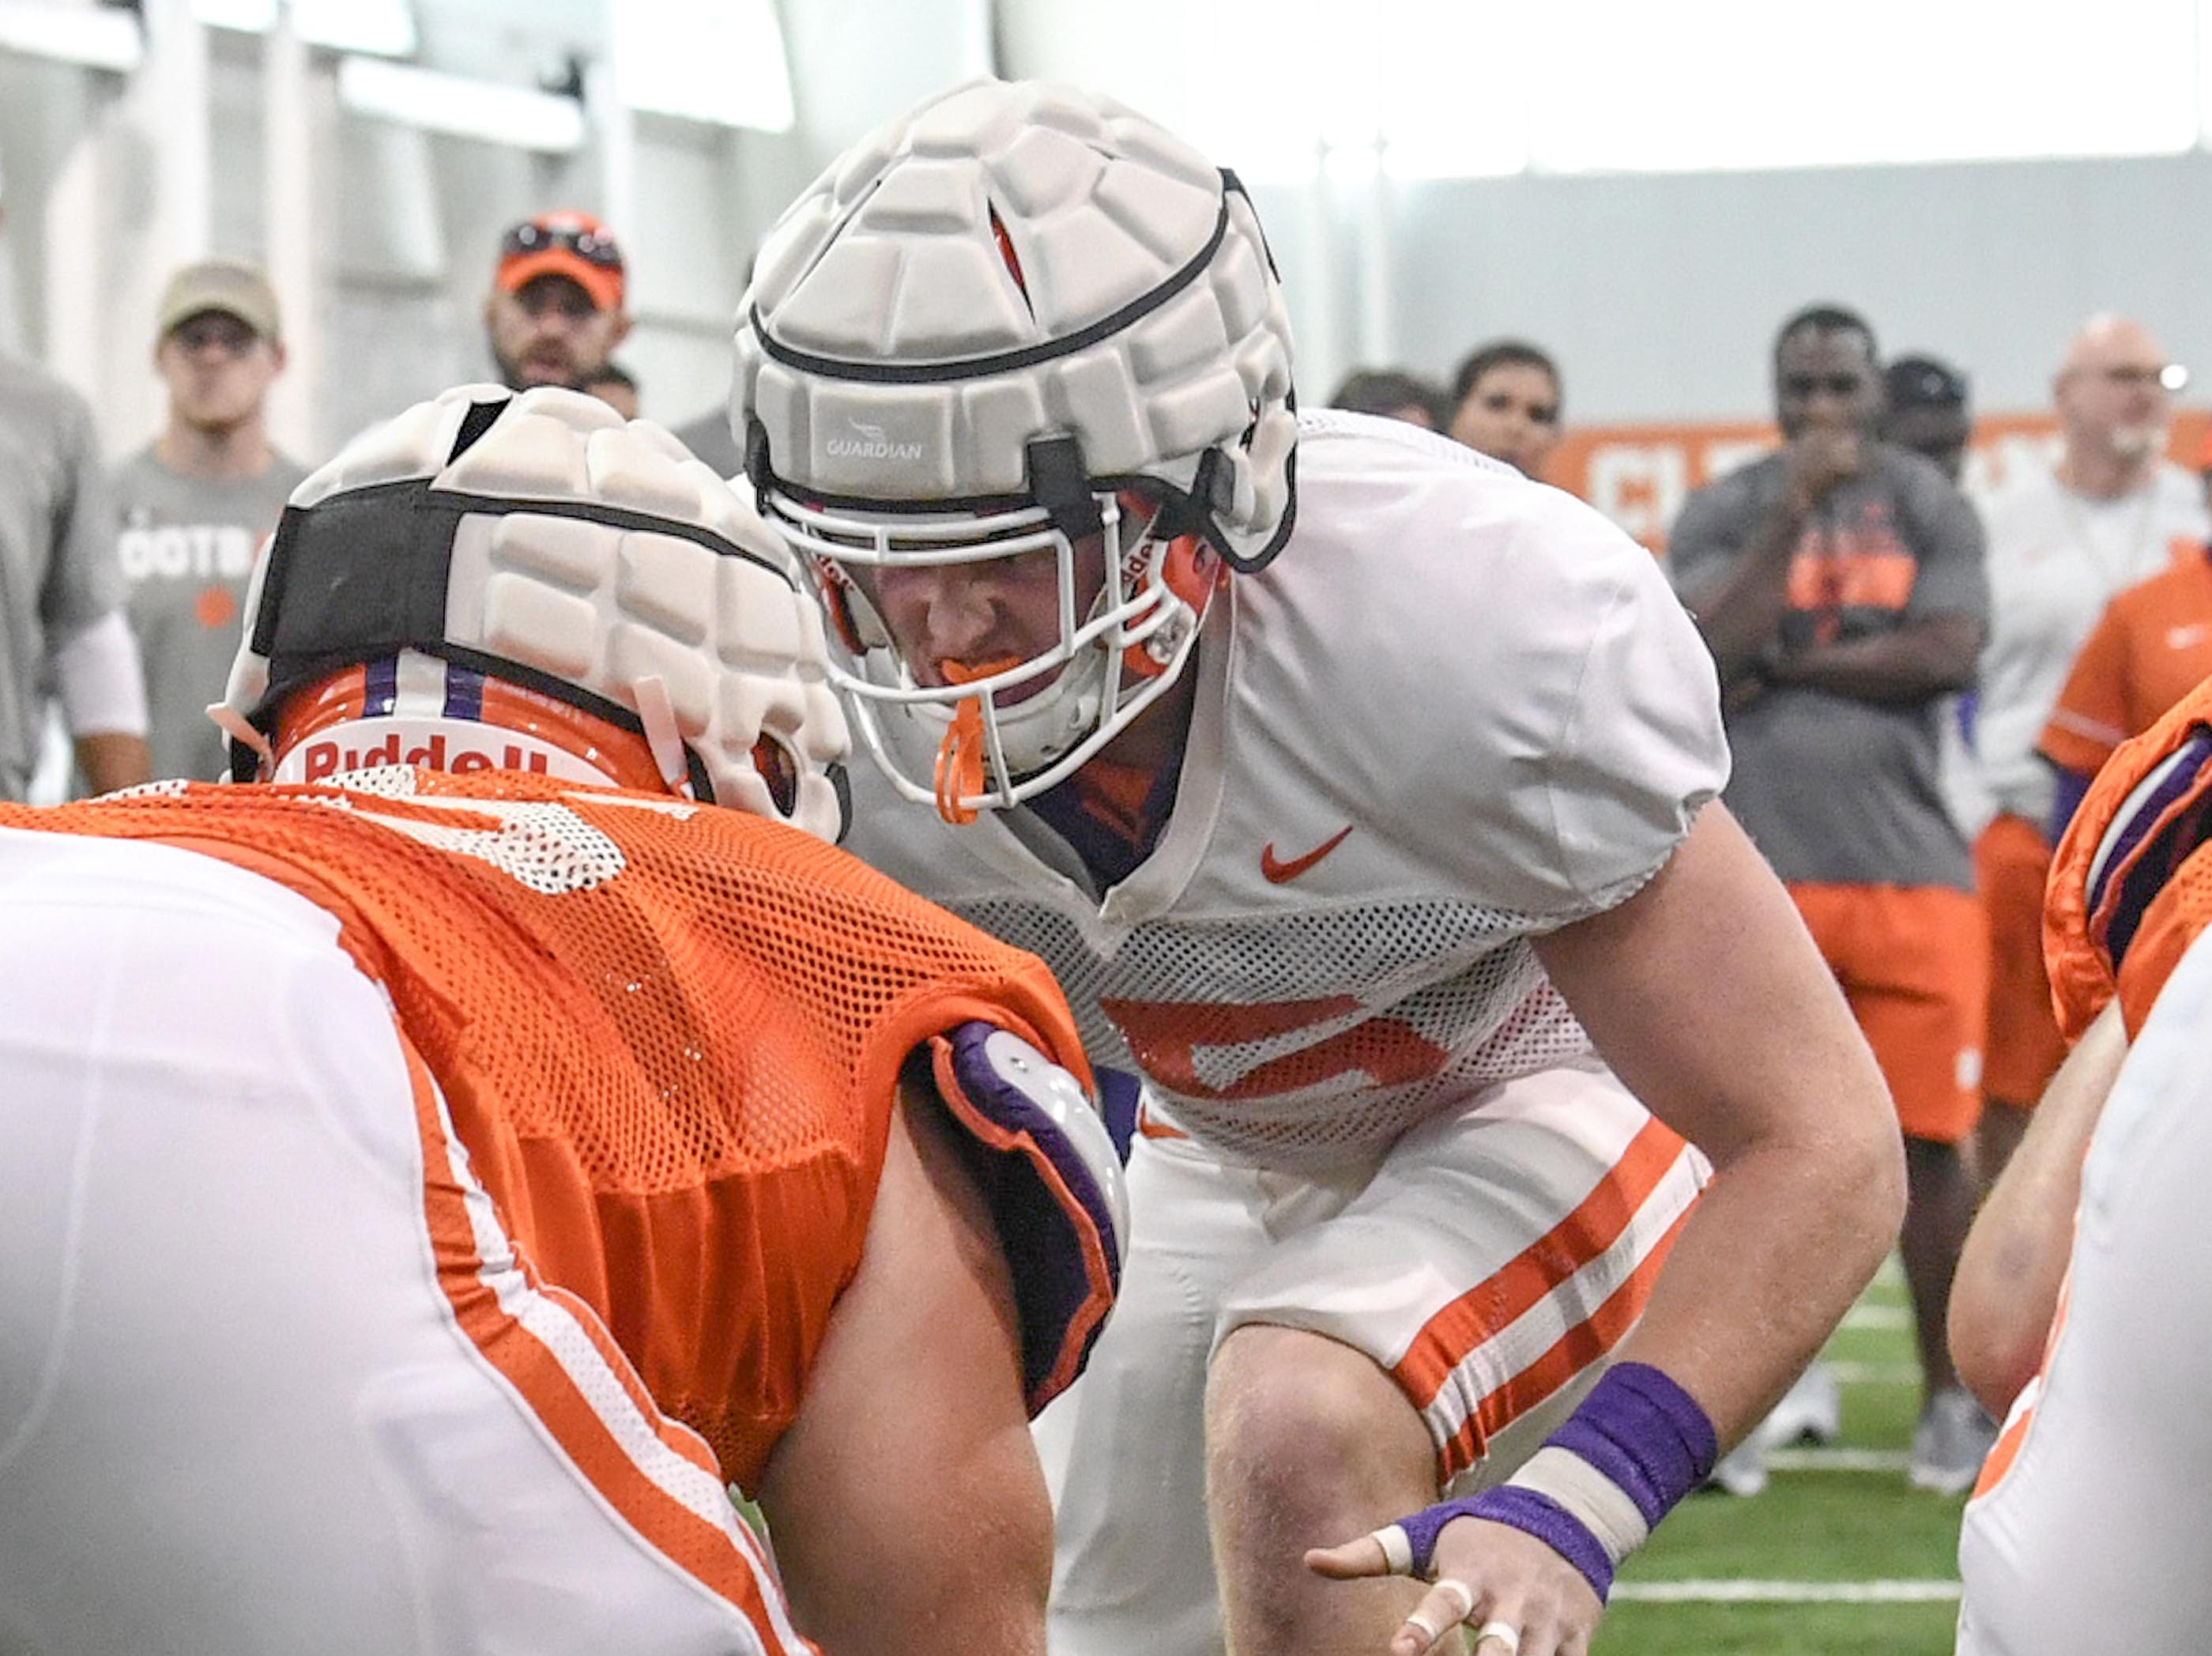 Clemson offensive lineman Matt Bockhorst (65), left, goes up against linebacker Jake Venables (15) during fall practice in Clemson on Wednesday.